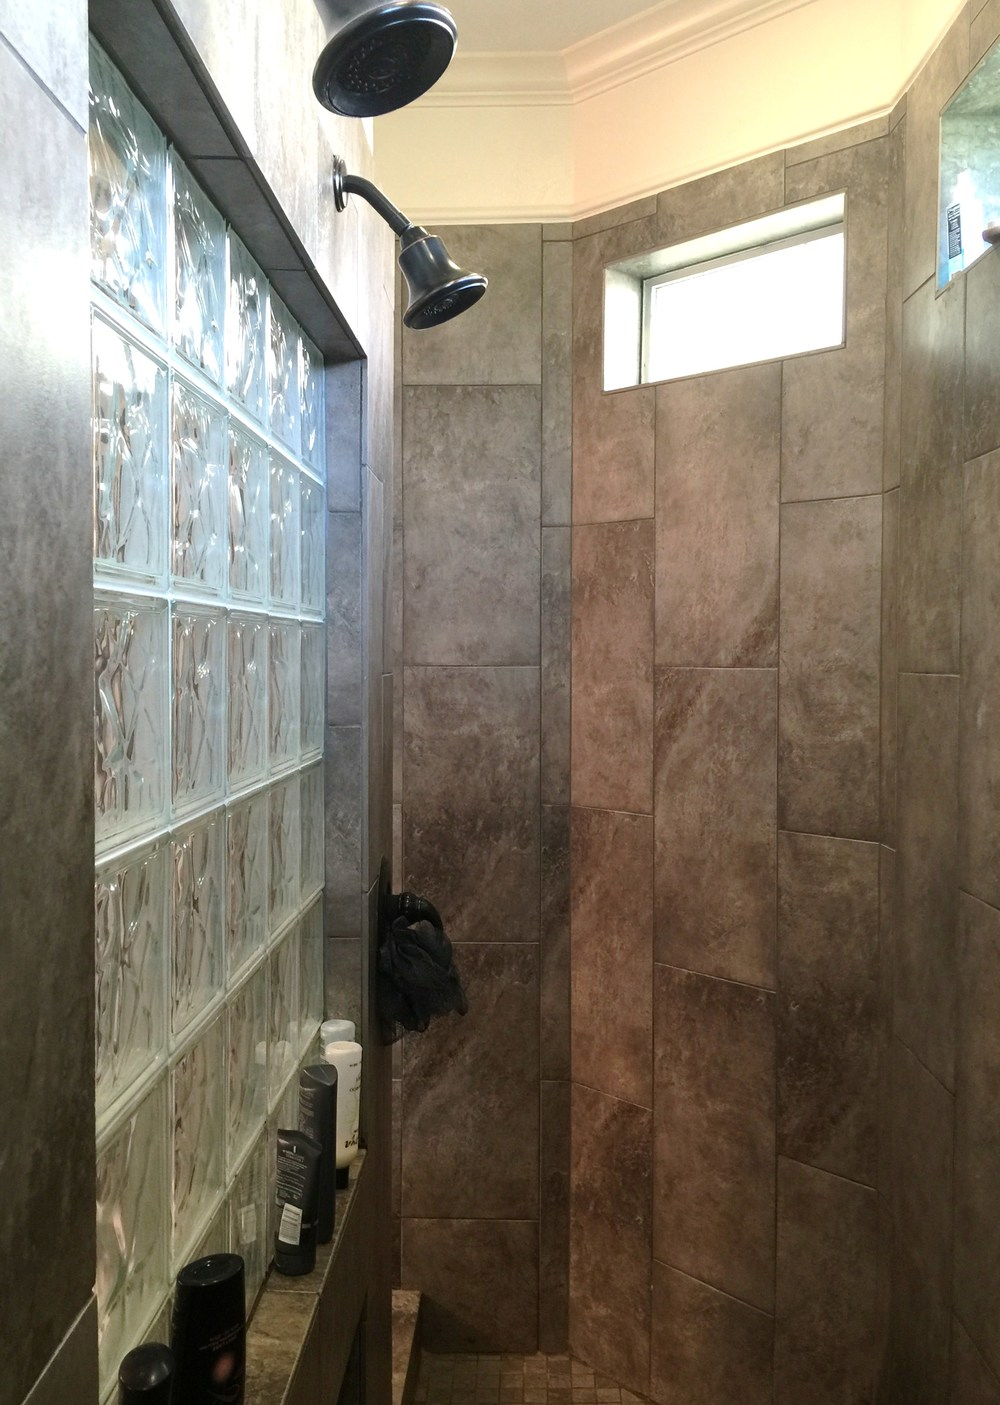 Marvelous BEFORE Entry to shower BEFORE Shower stall